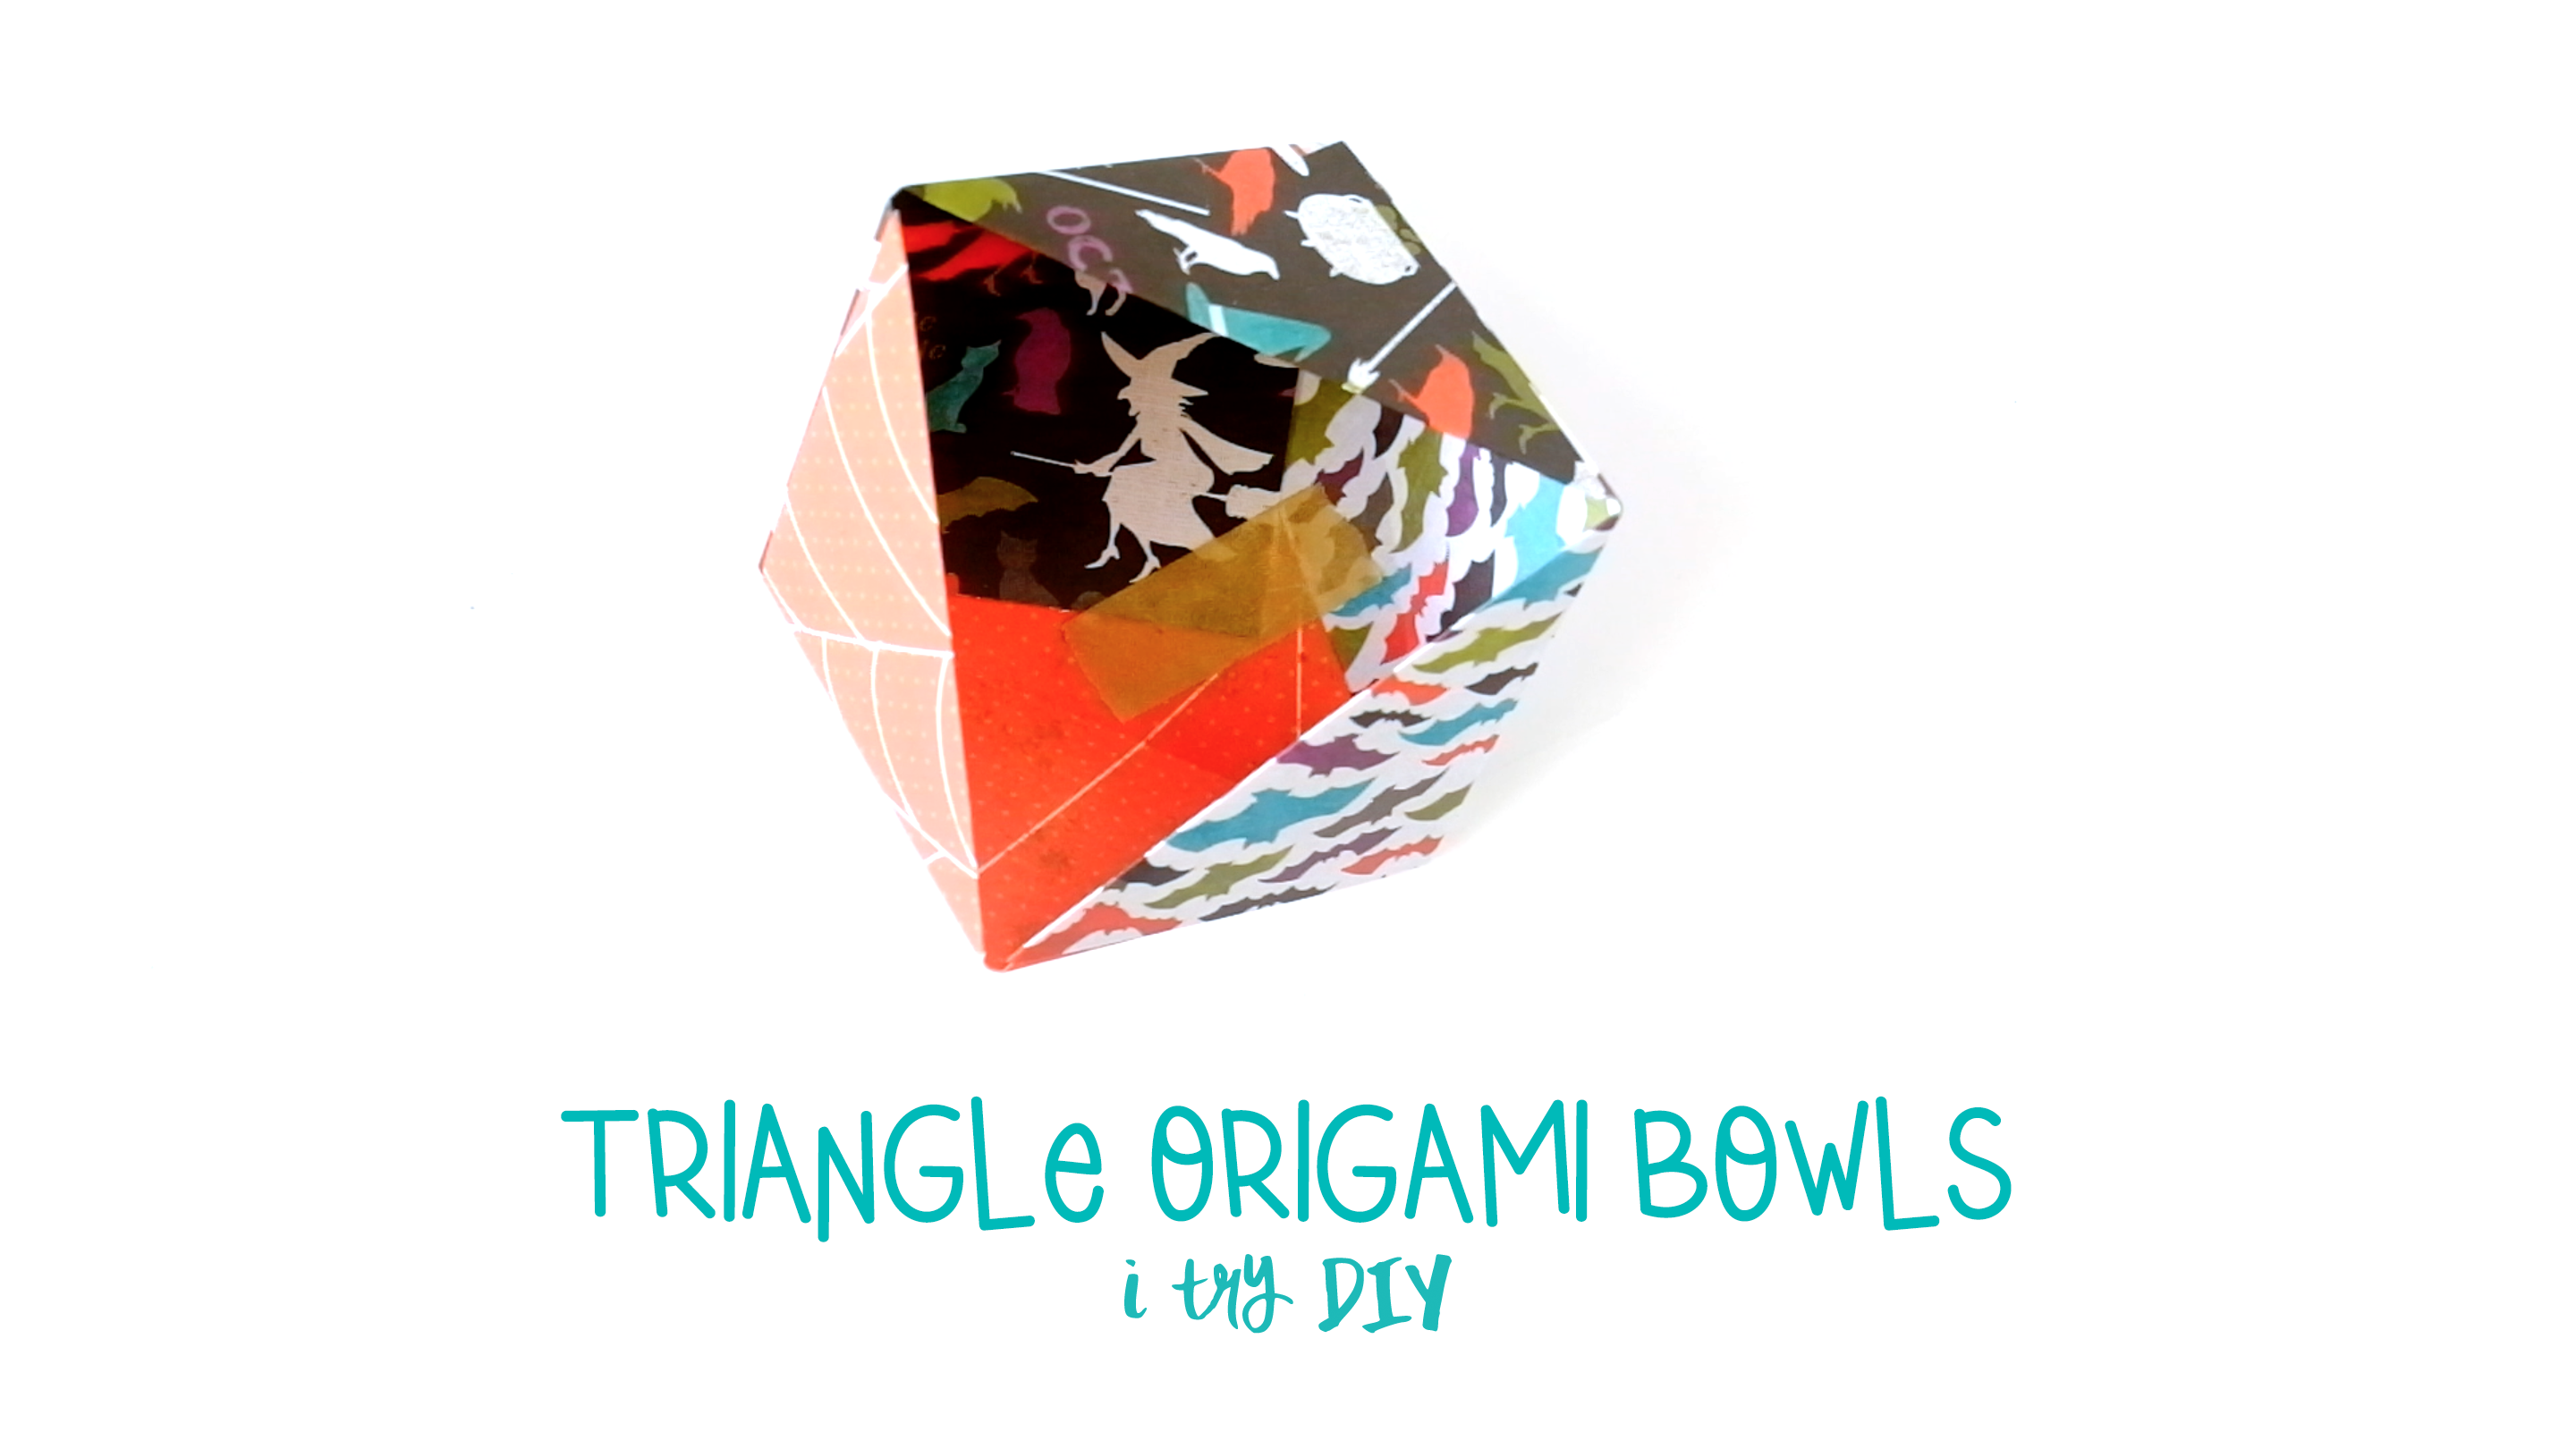 I Try DIY | How to Make Triangle Origami Bowls for Halloween